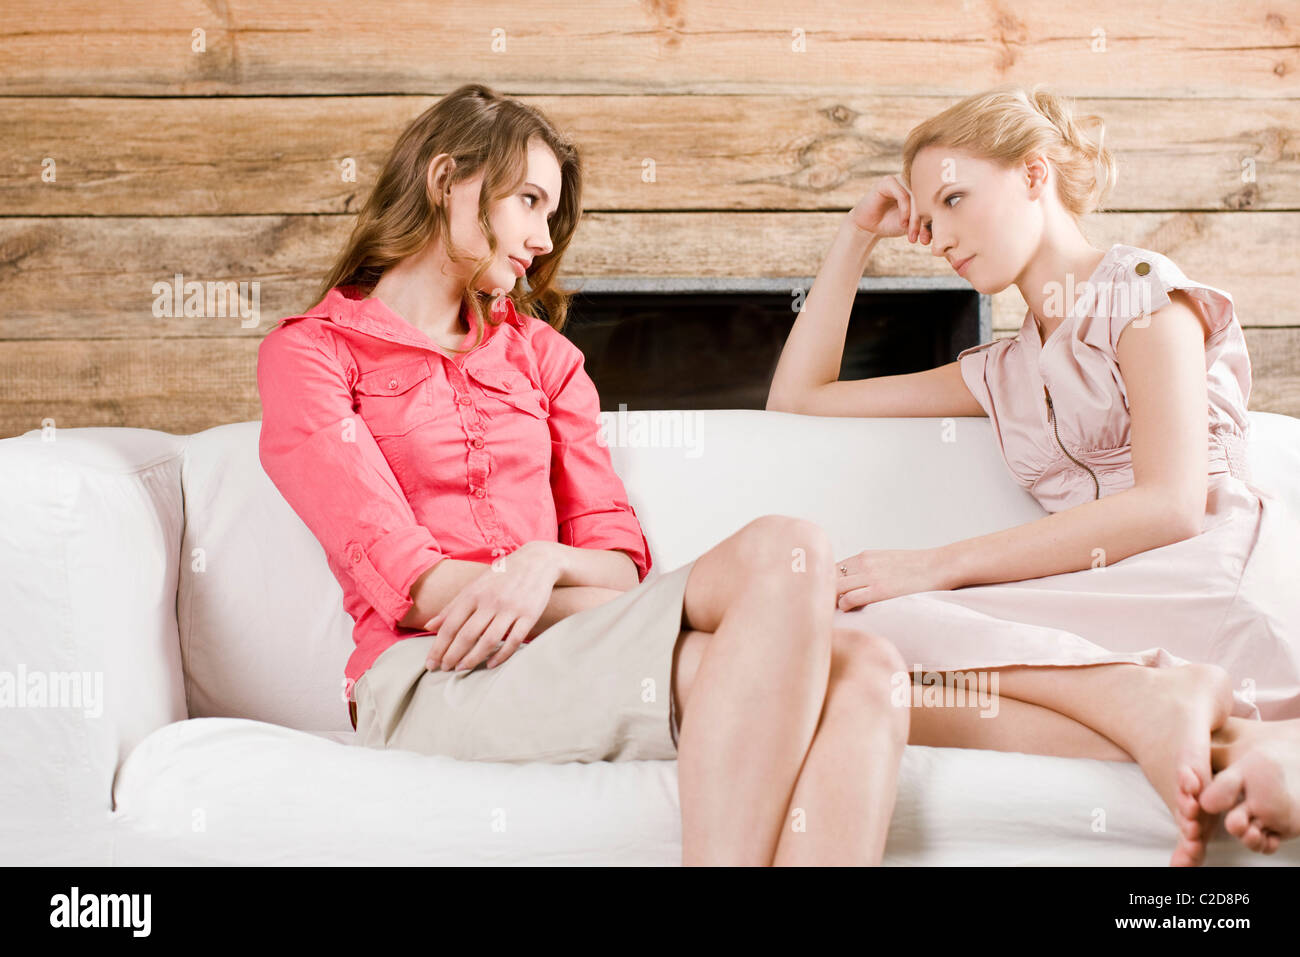 Two women arguing - Stock Image